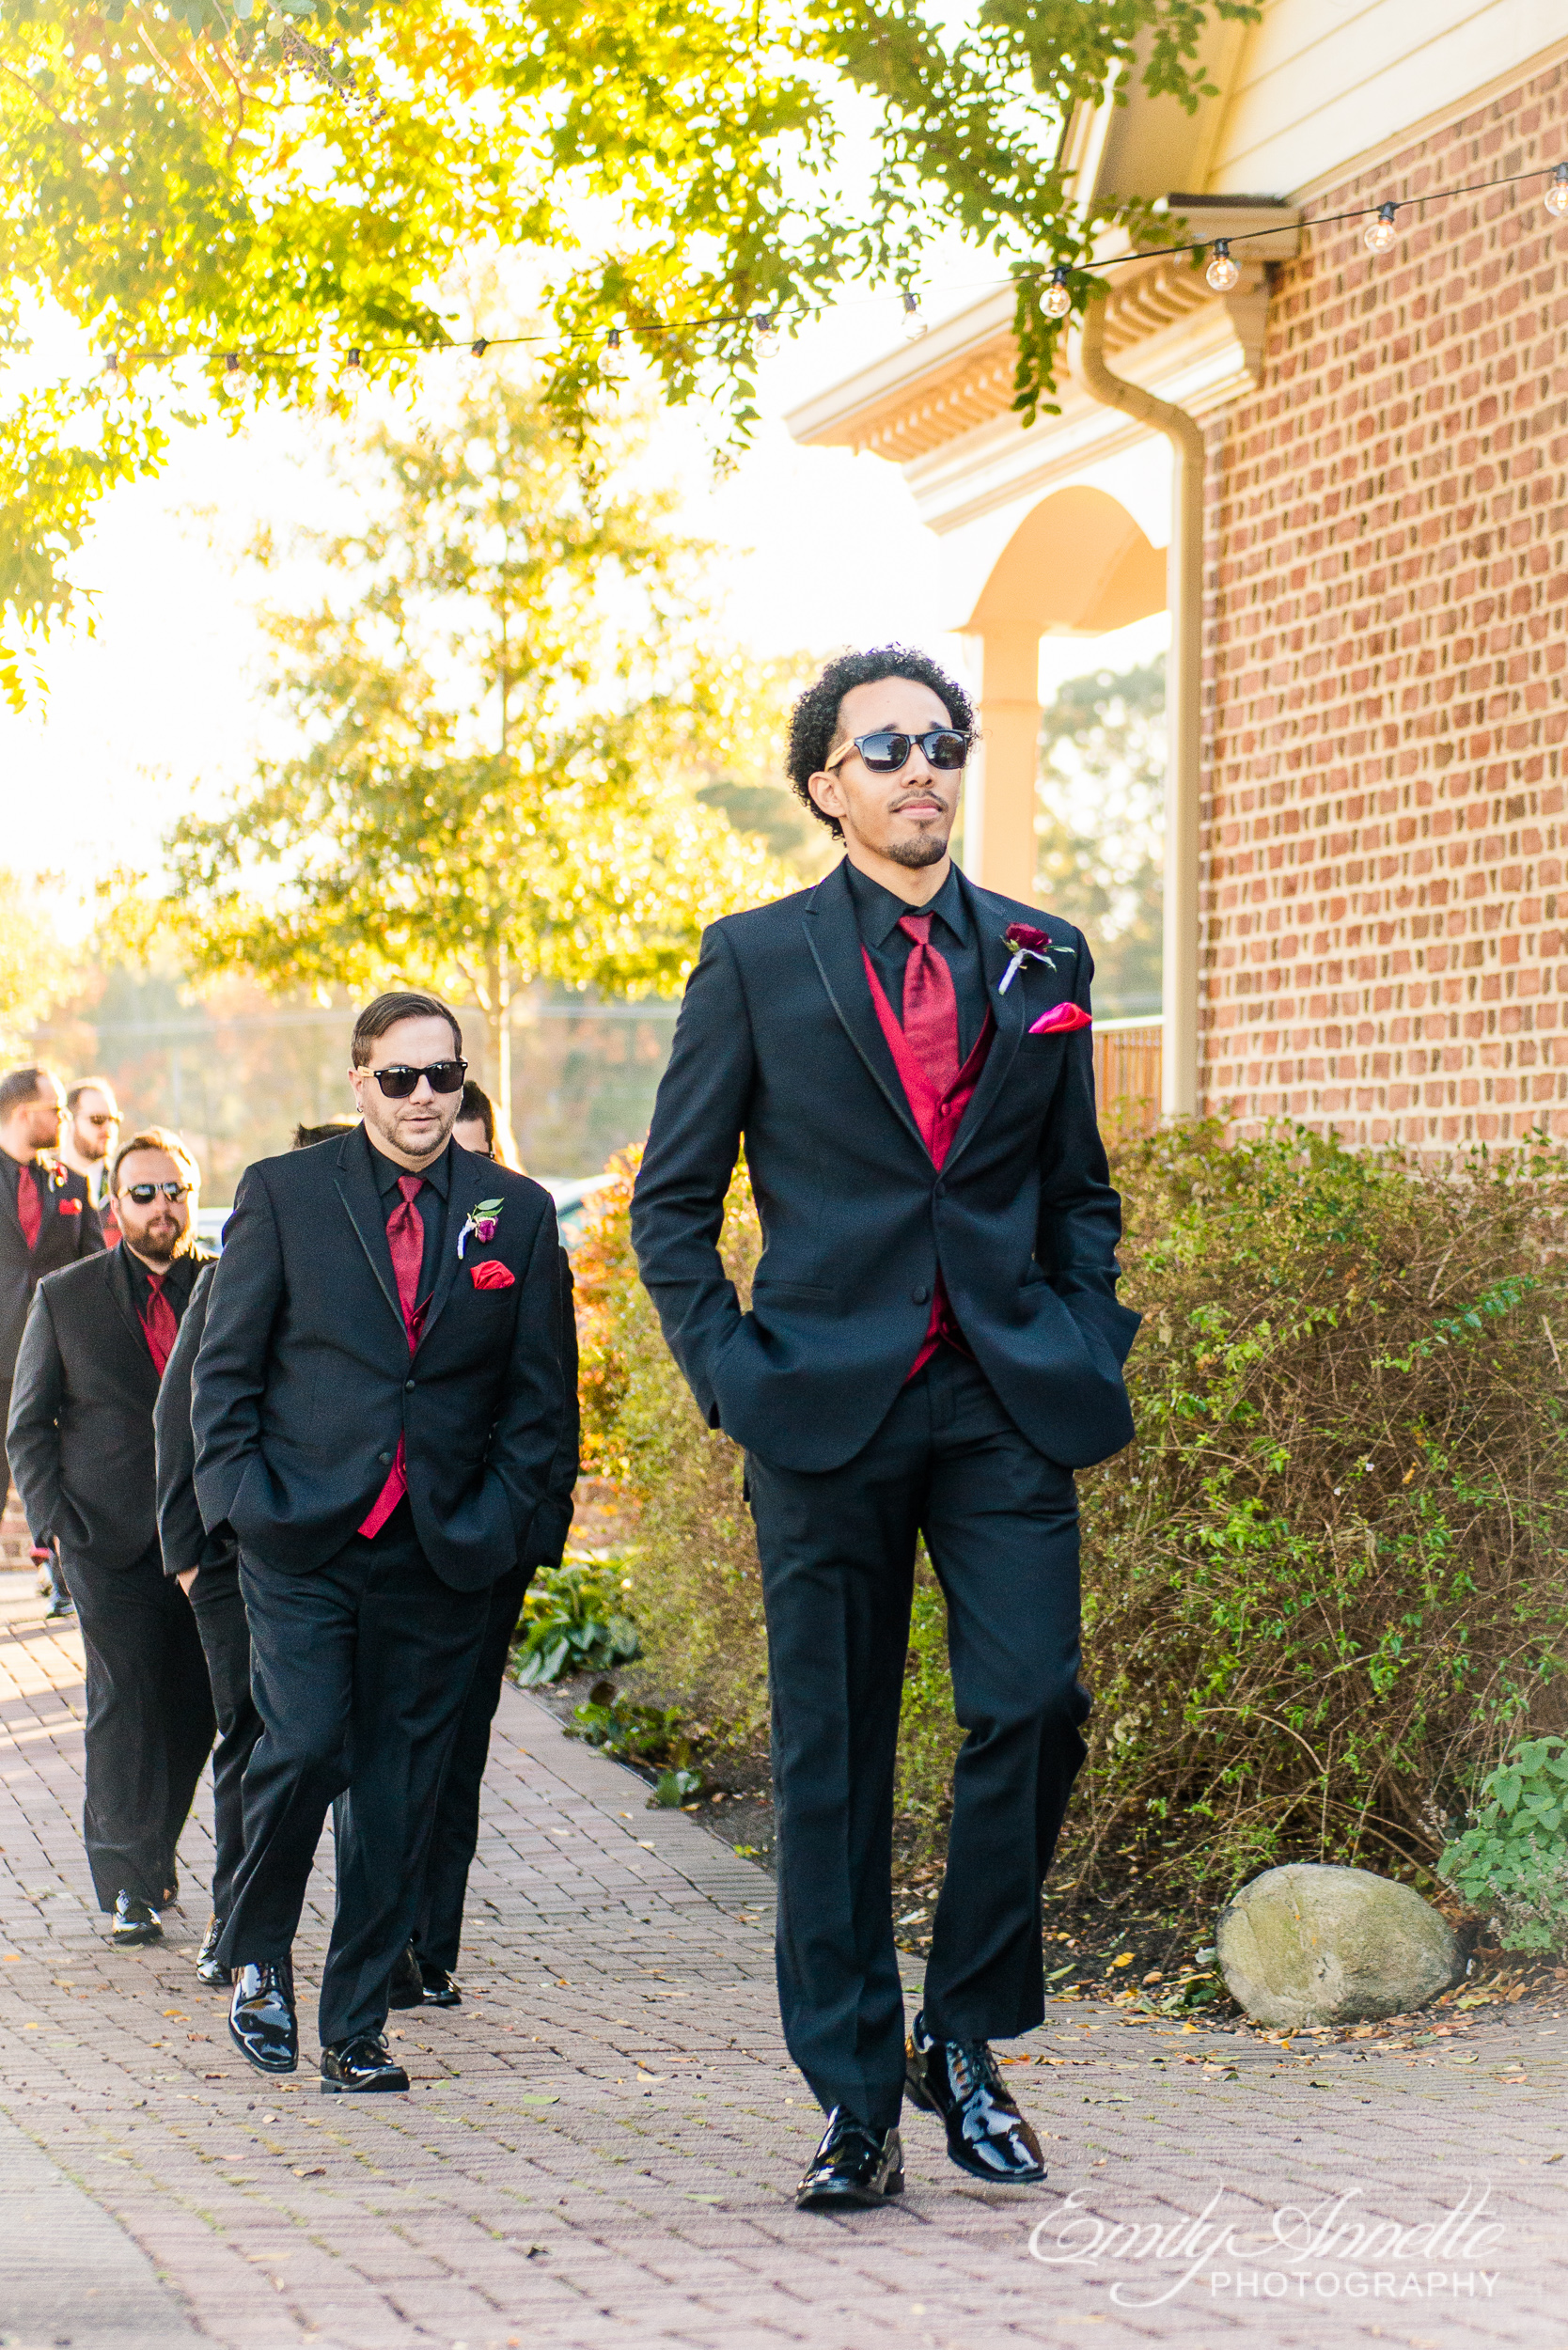 Groomsmen in sunglasses wearing black and red suits walking into the wedding ceremony at Willow Oaks Country Club in Richmond, Virginia